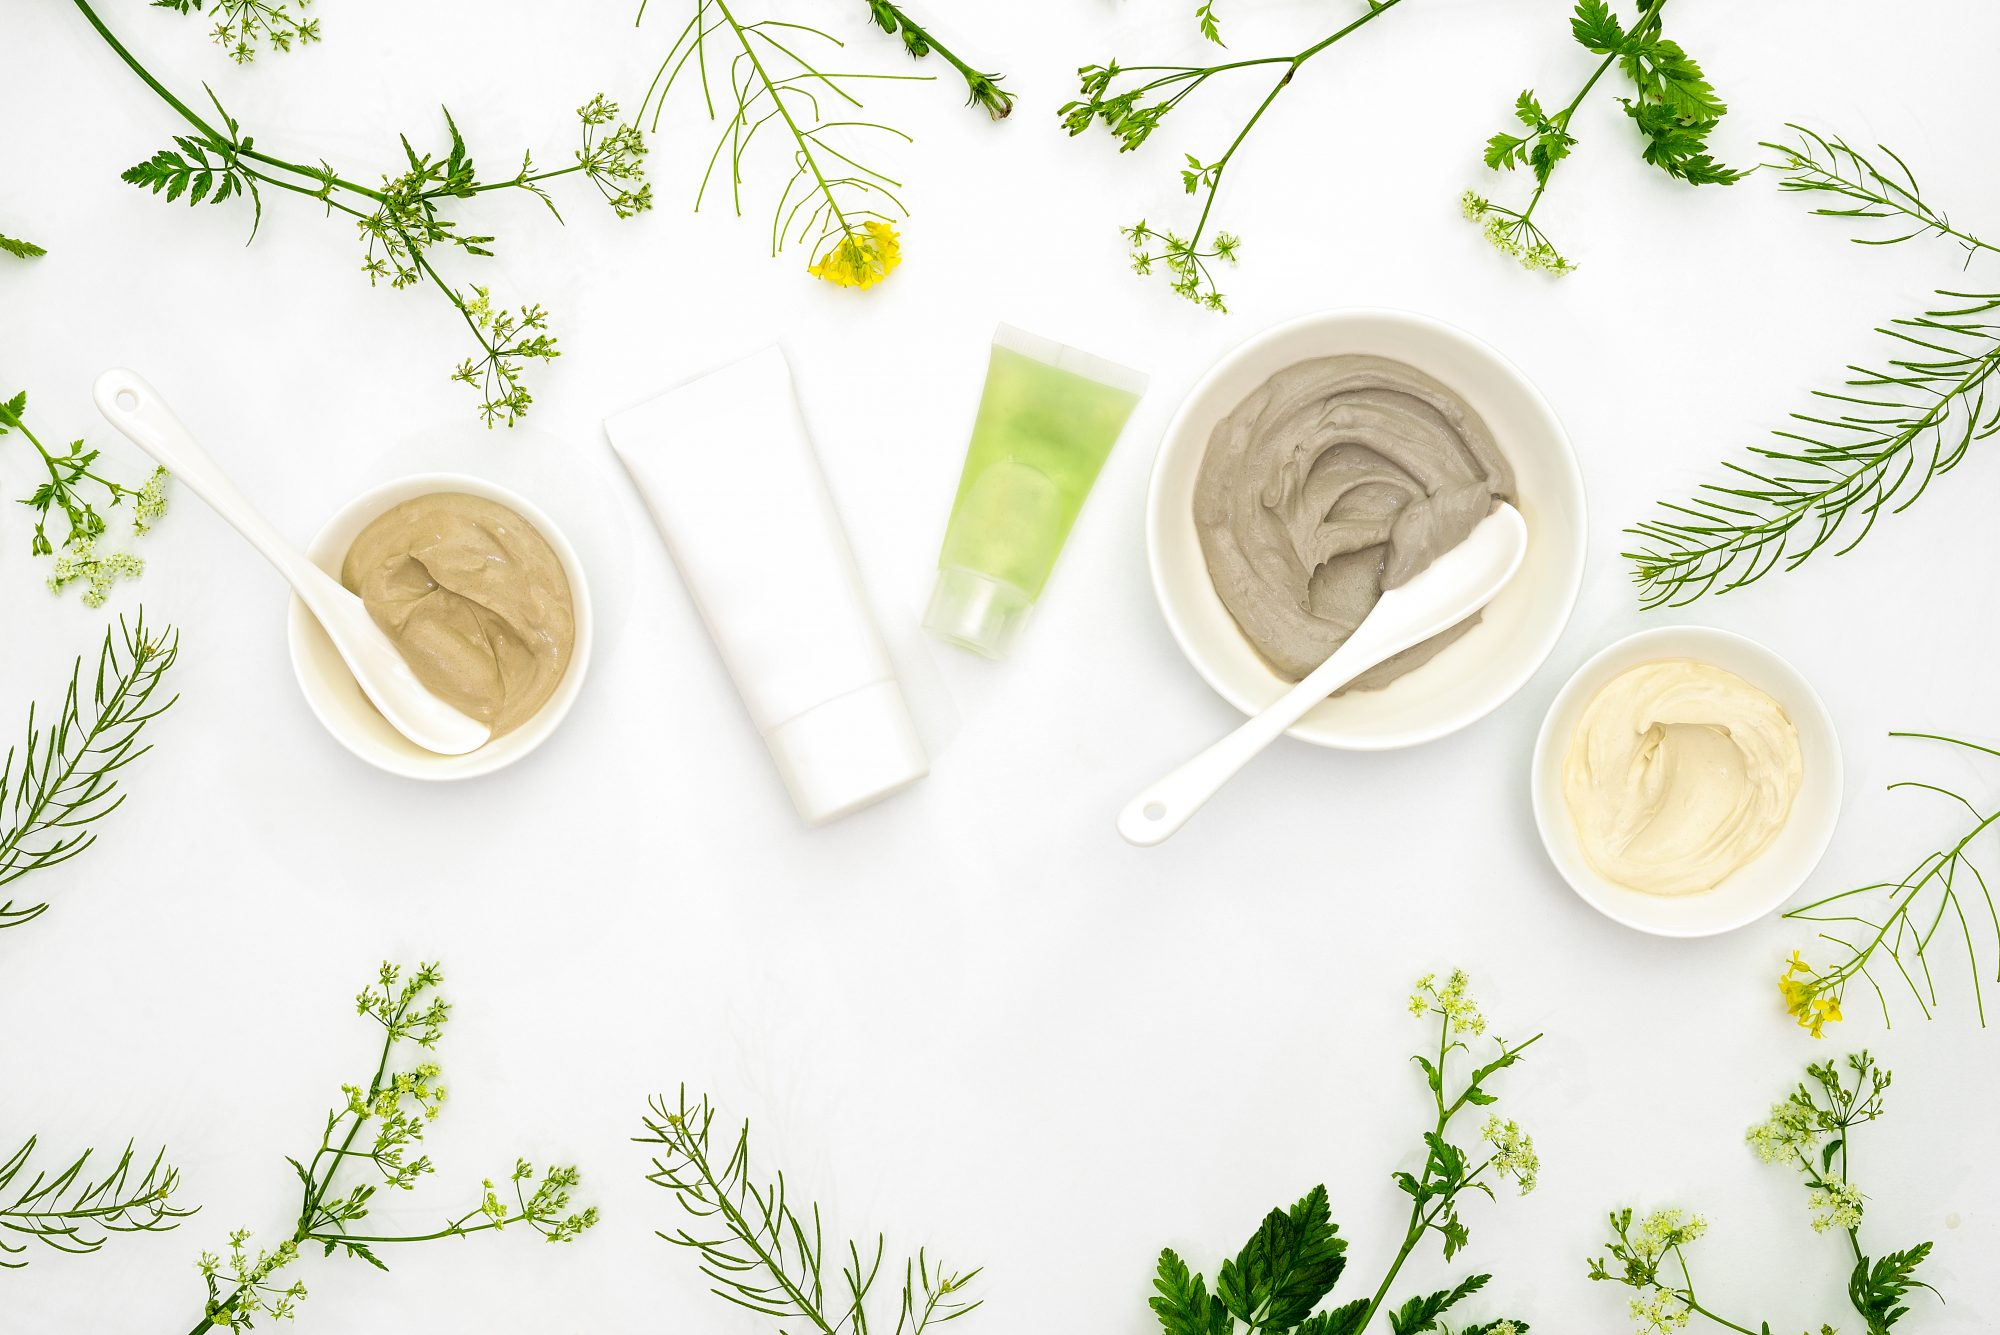 beauty products surrounded by greenery